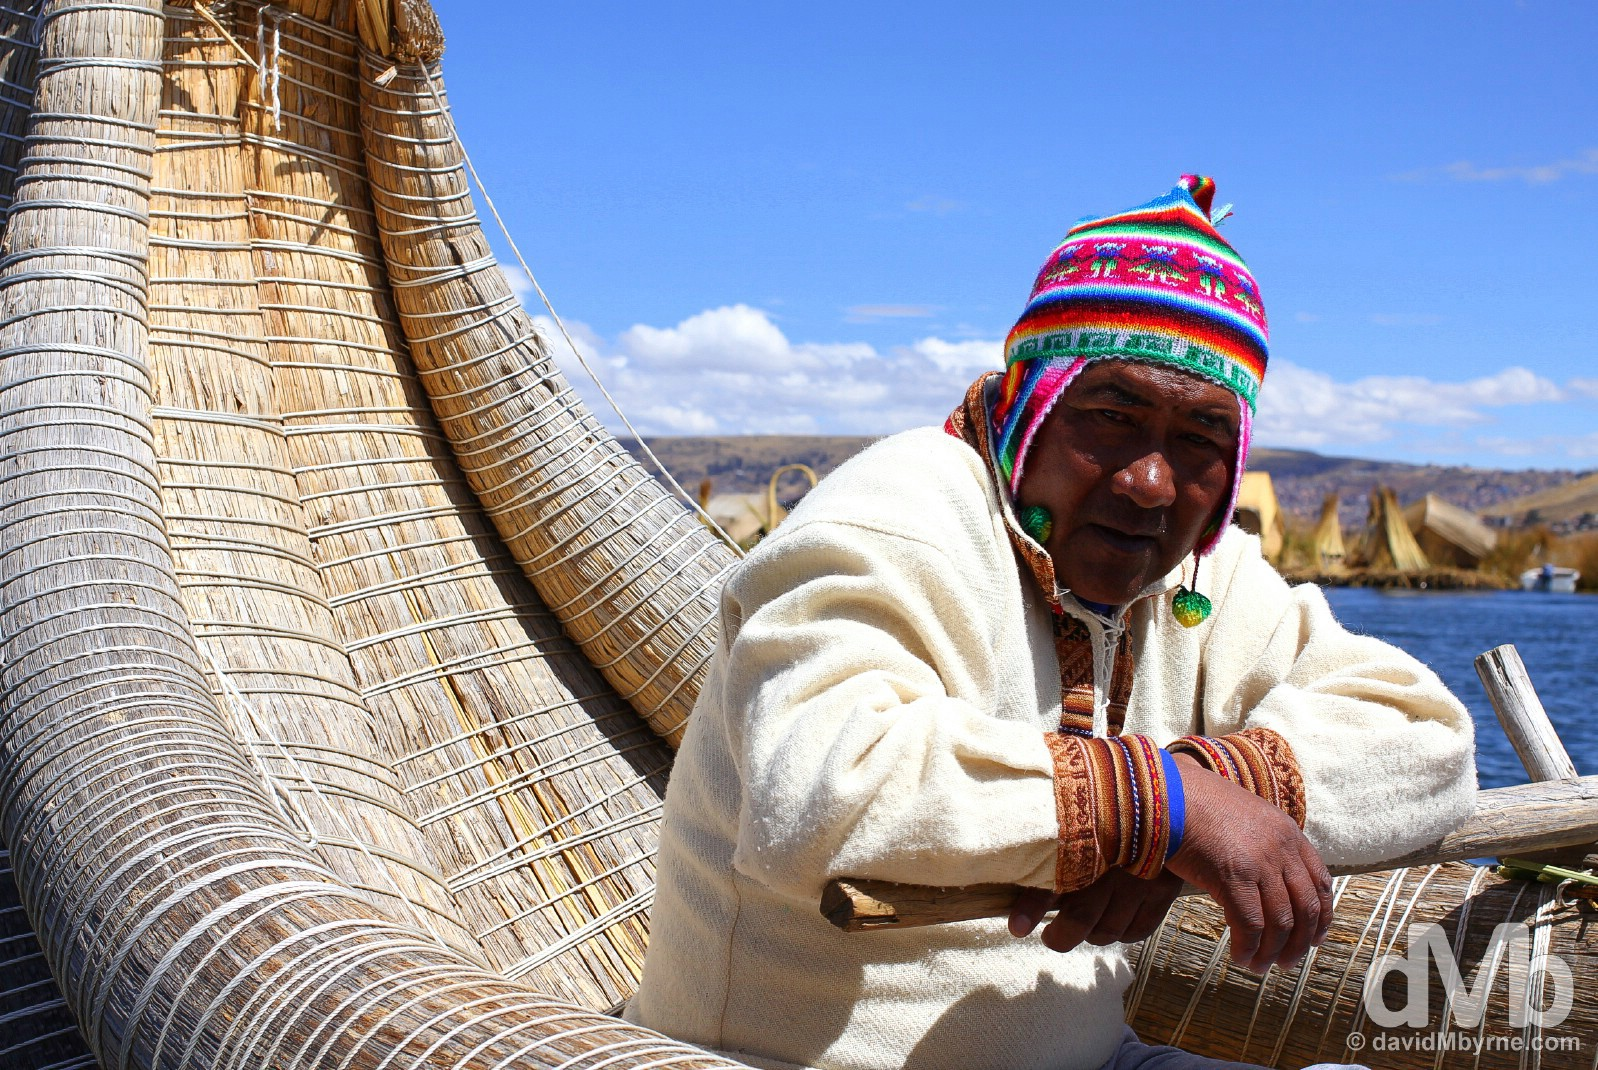 A boatman on the Uros Islands, Lake Titicaca, Peru. August 19, 2015.